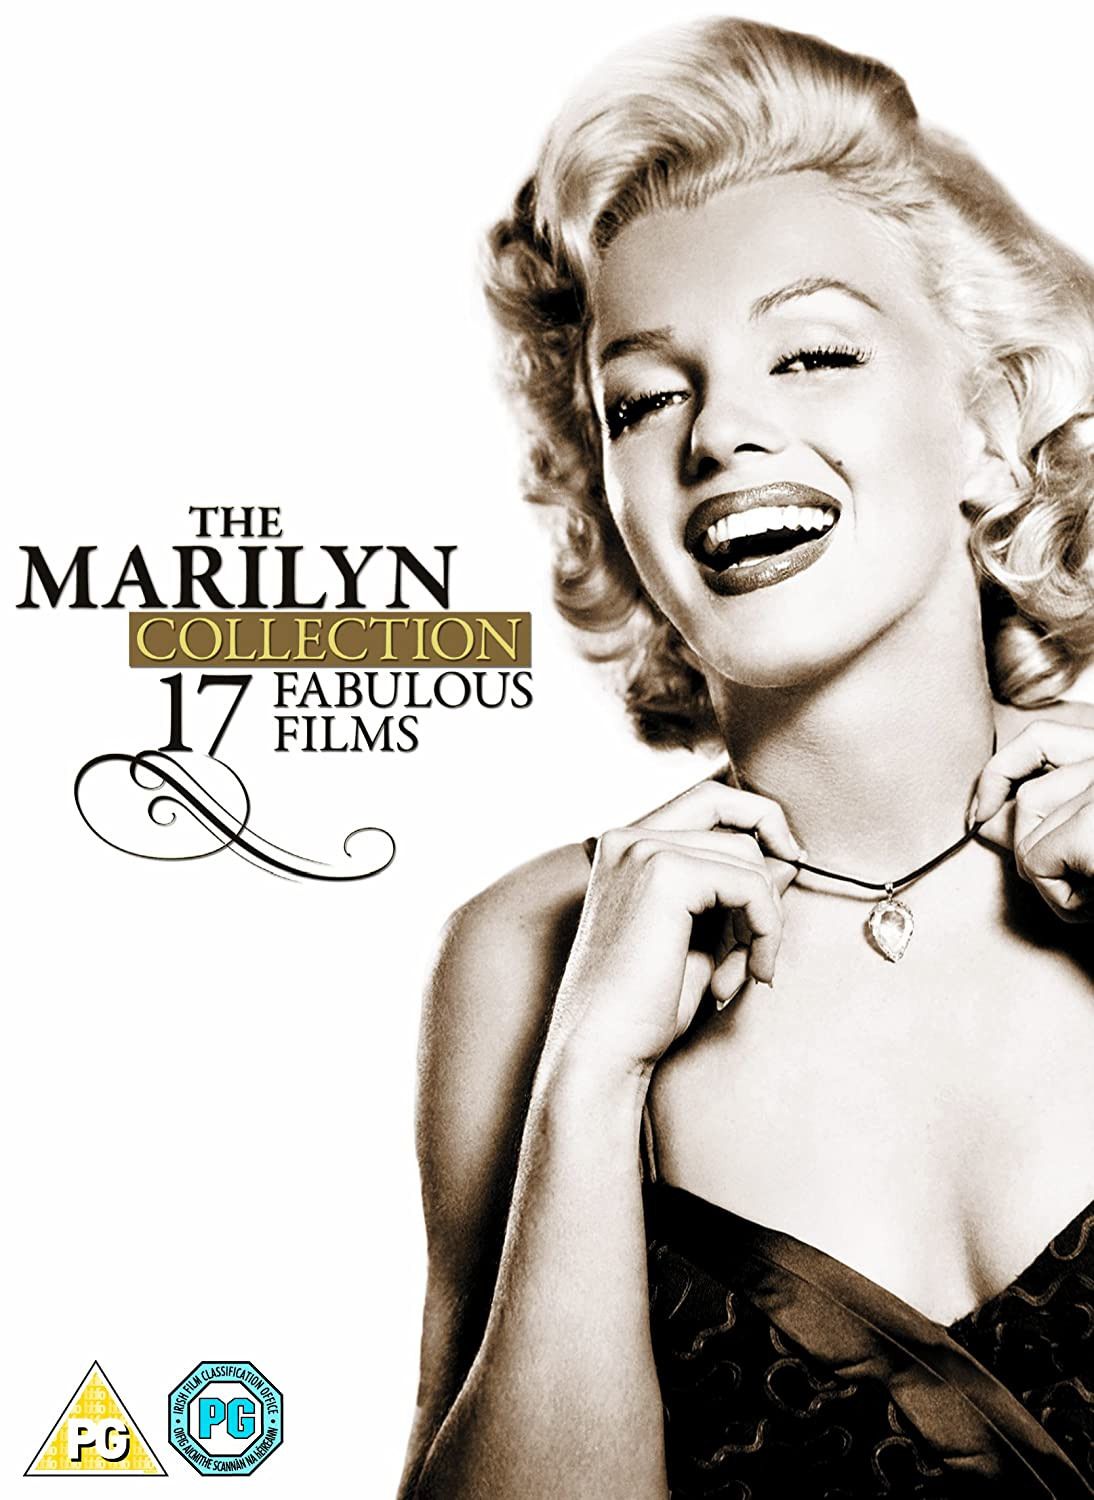 Marilyn Monroe: The Marilyn Collection - 17 Fabulous Films DVD 1950 ...